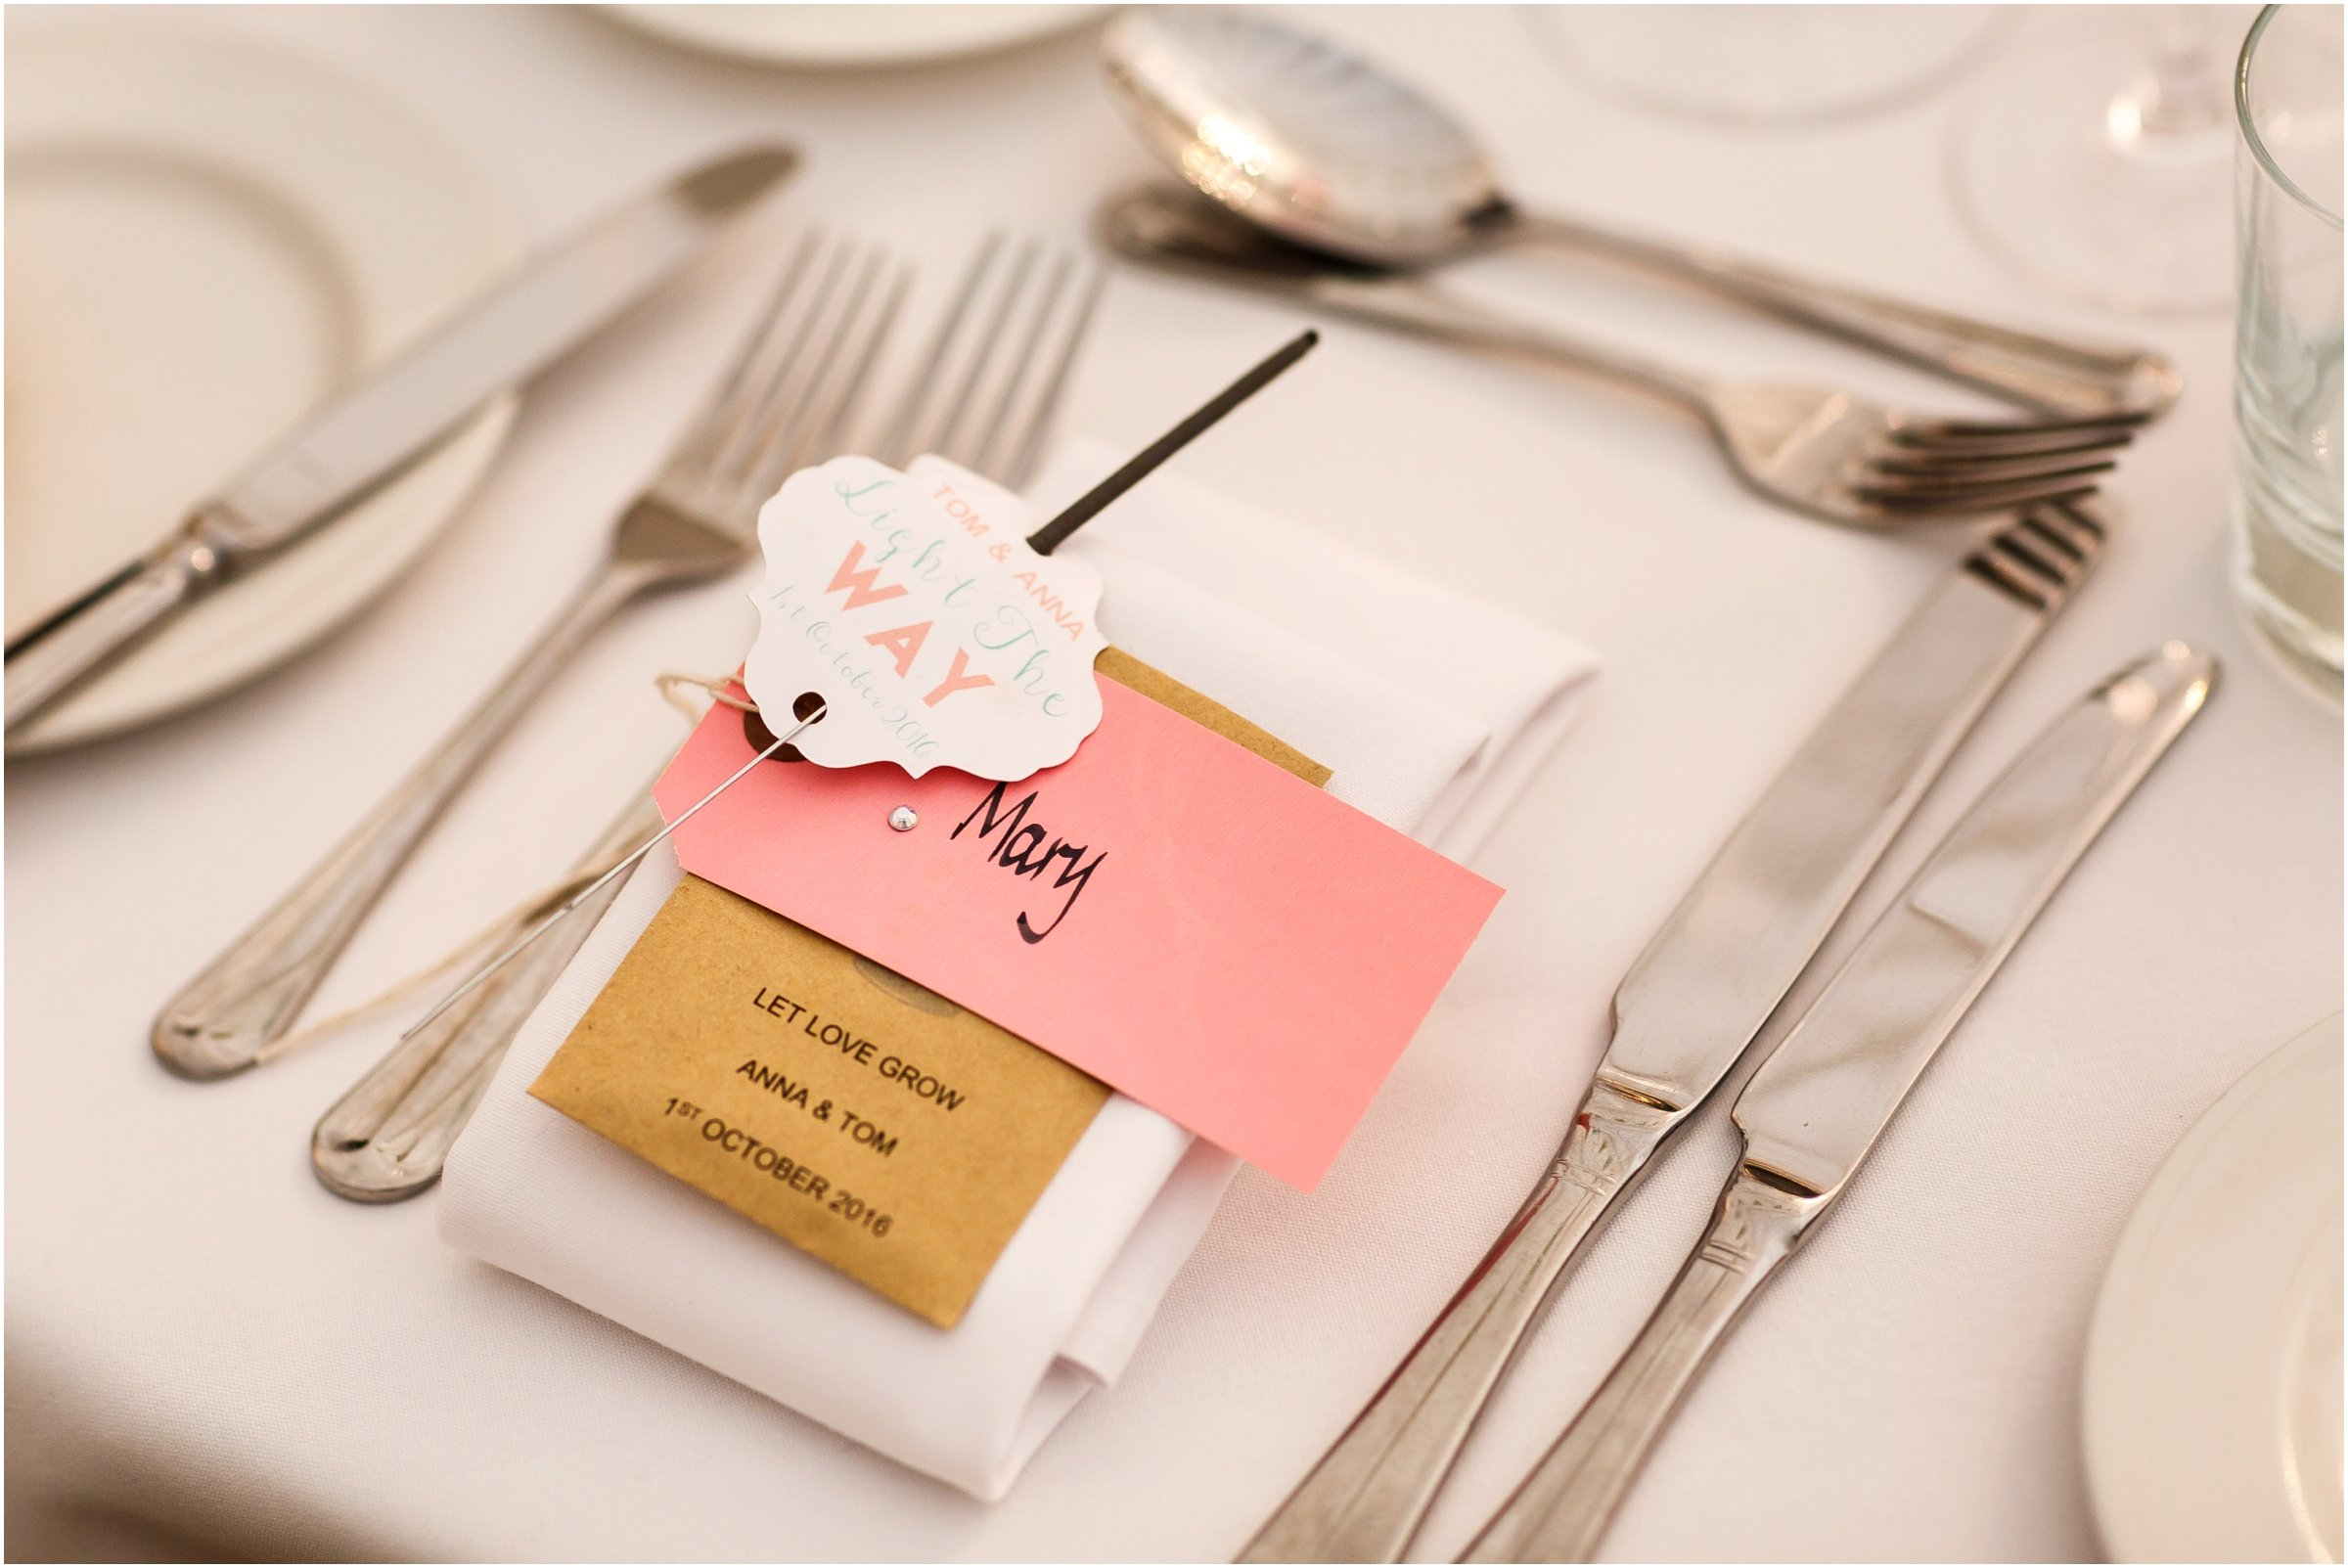 Photograph of wedding favours